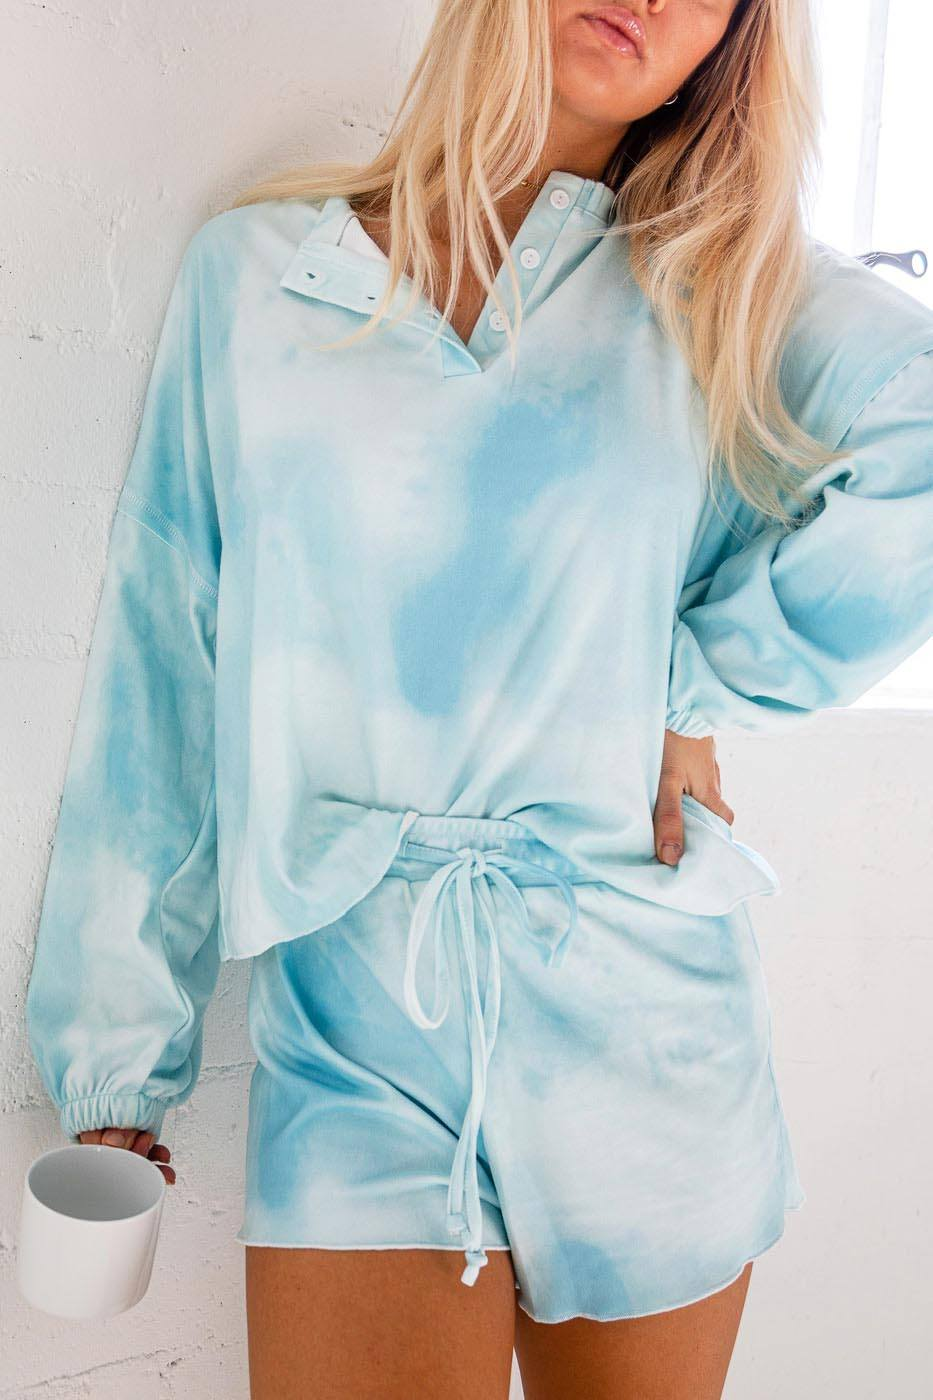 Sweet Tooth Aqua Tie-Dye Long Sleeve Top